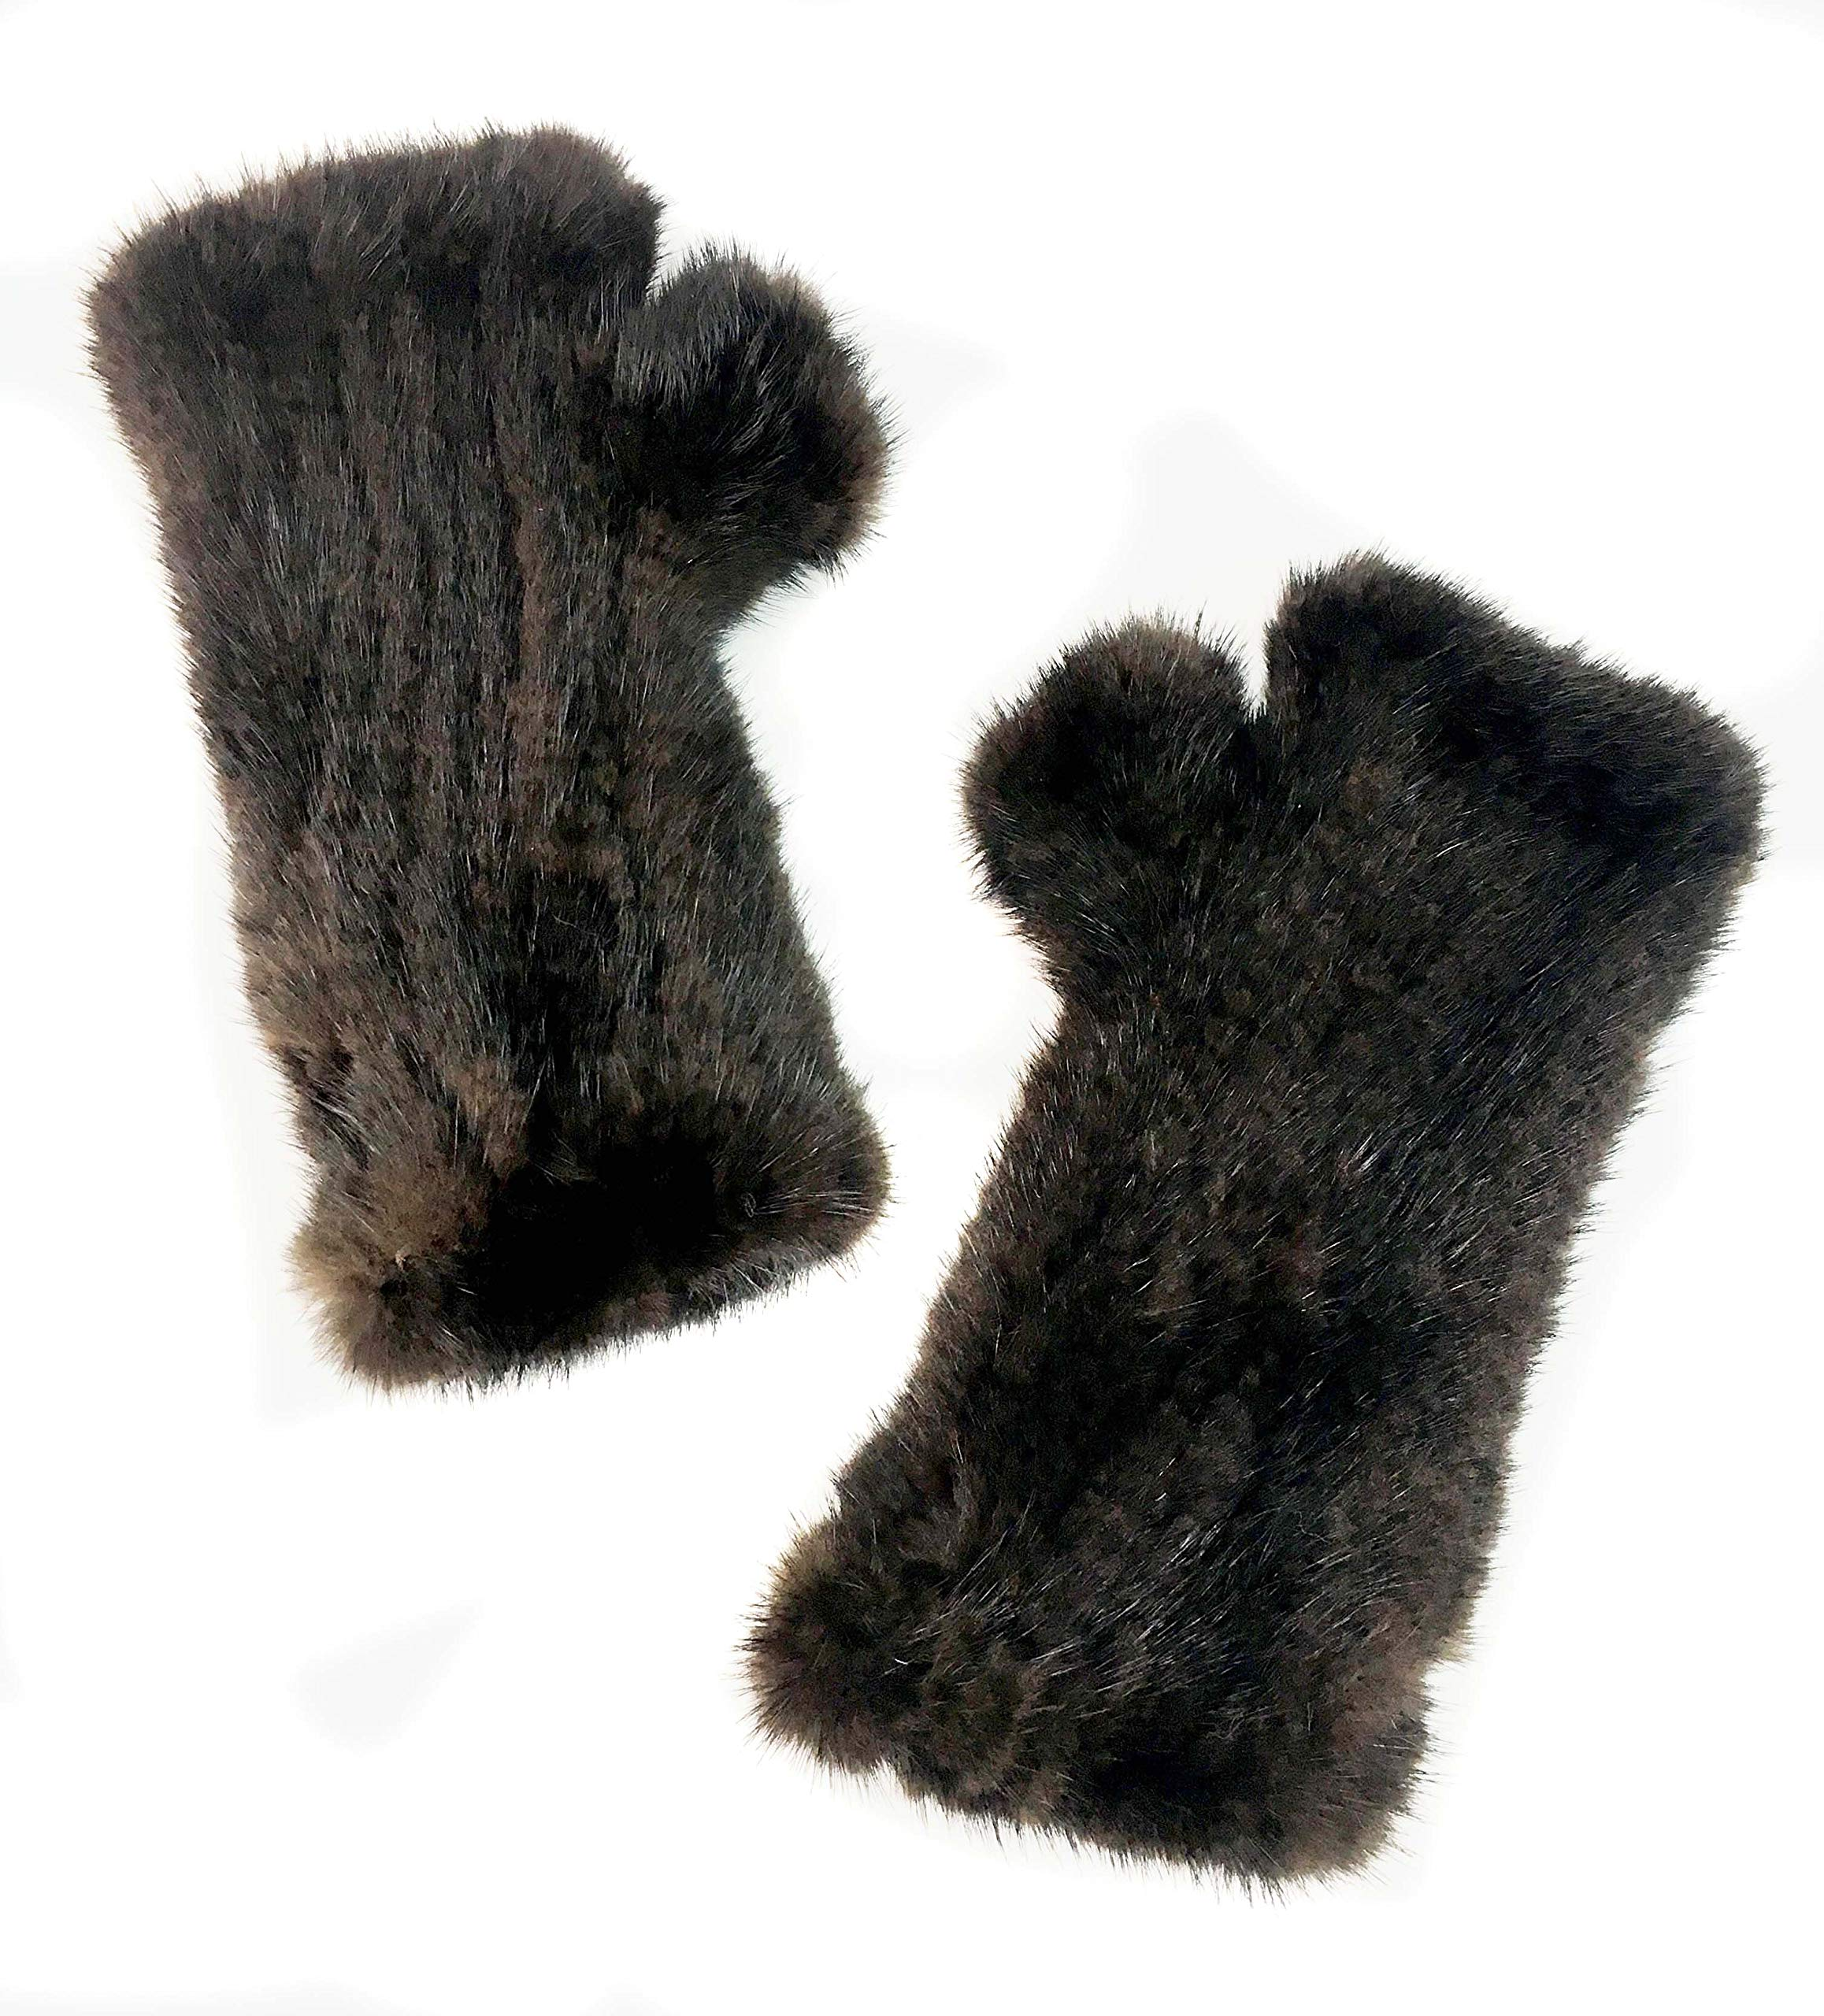 Surell Brown Mink Fur Textile Knit Fingerless Gloves - Winter Texting Mittens - Luxury Cold Weather Clothing